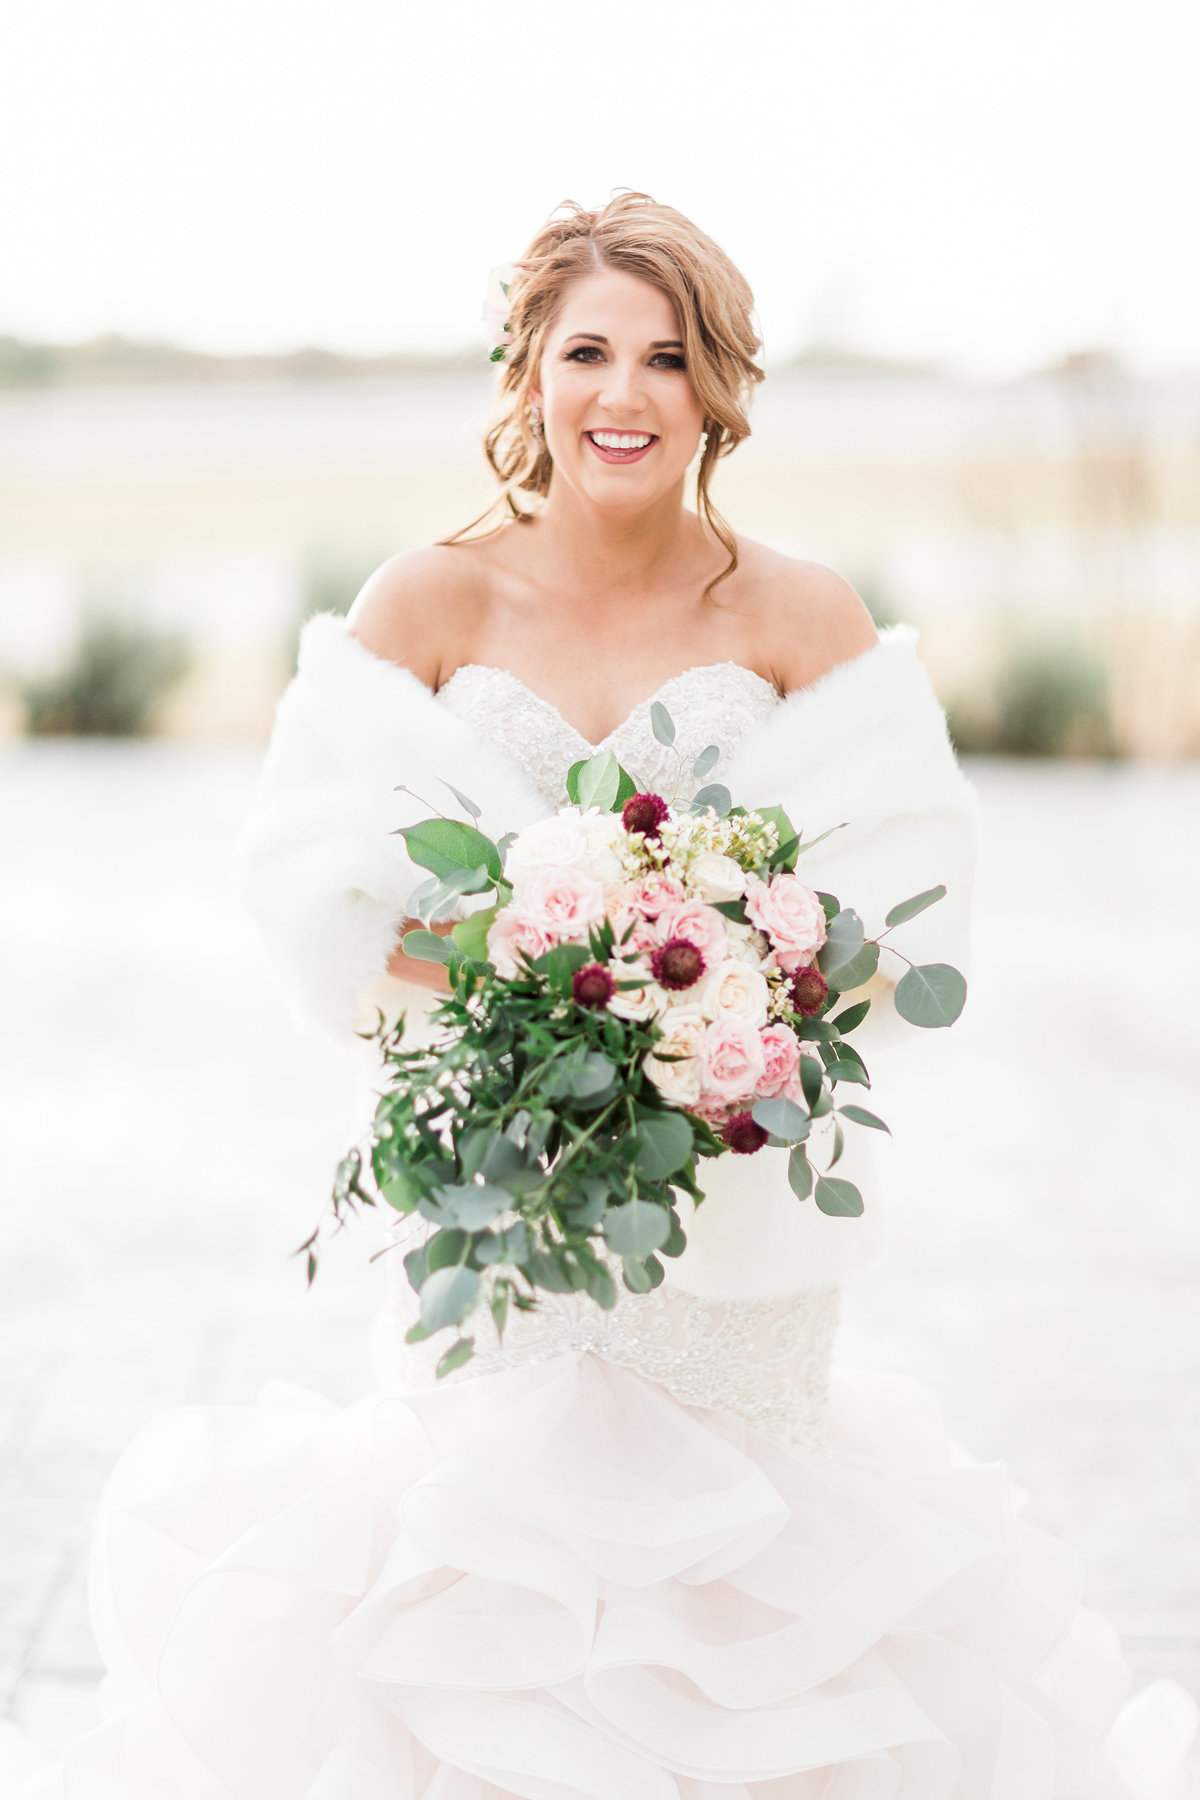 Aubry Texas Milestone Walters Wedding Estates Photography